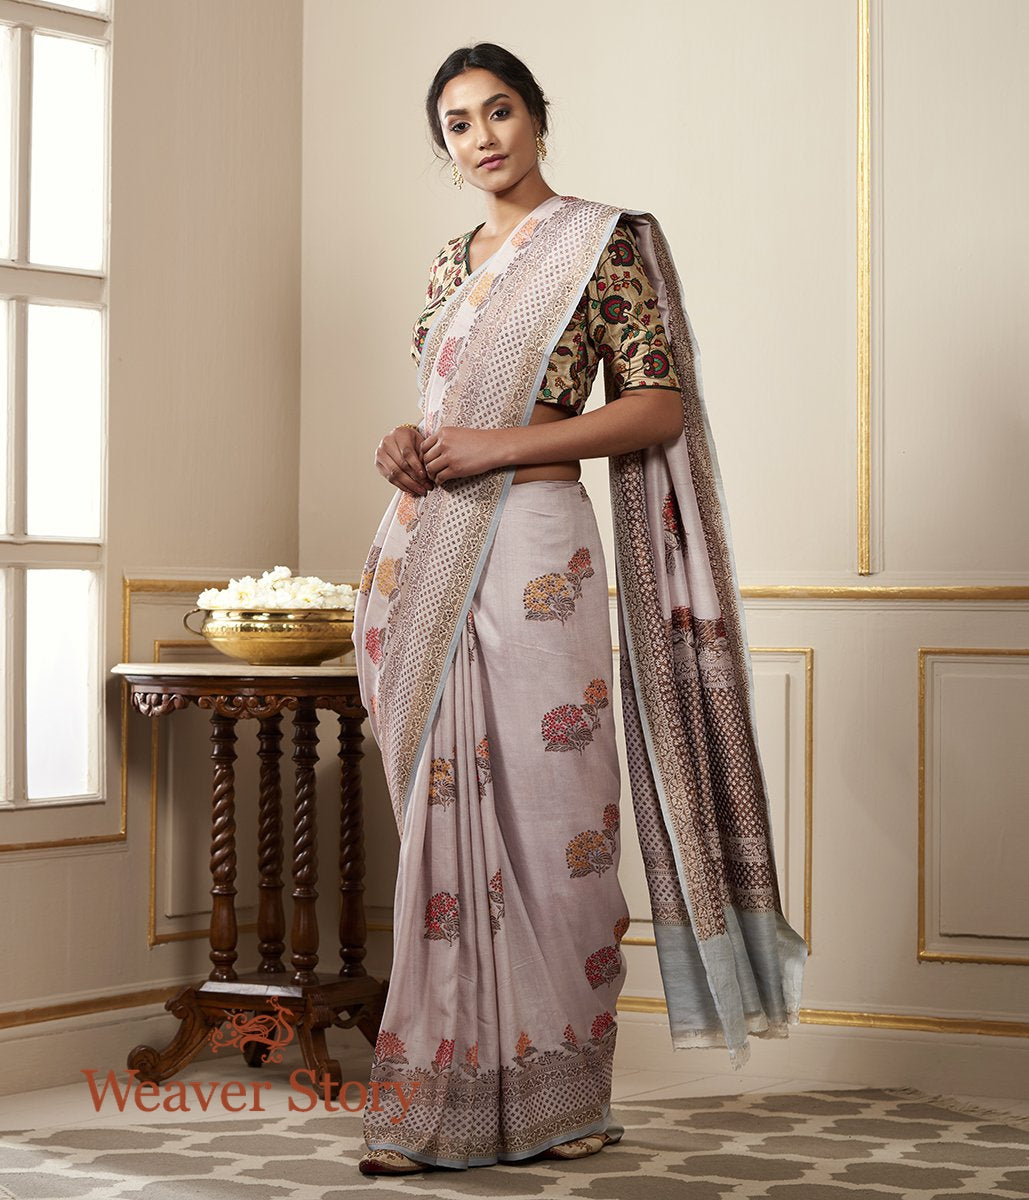 Handwoven Light Mauve Tusser Saree with Meenakari Booti